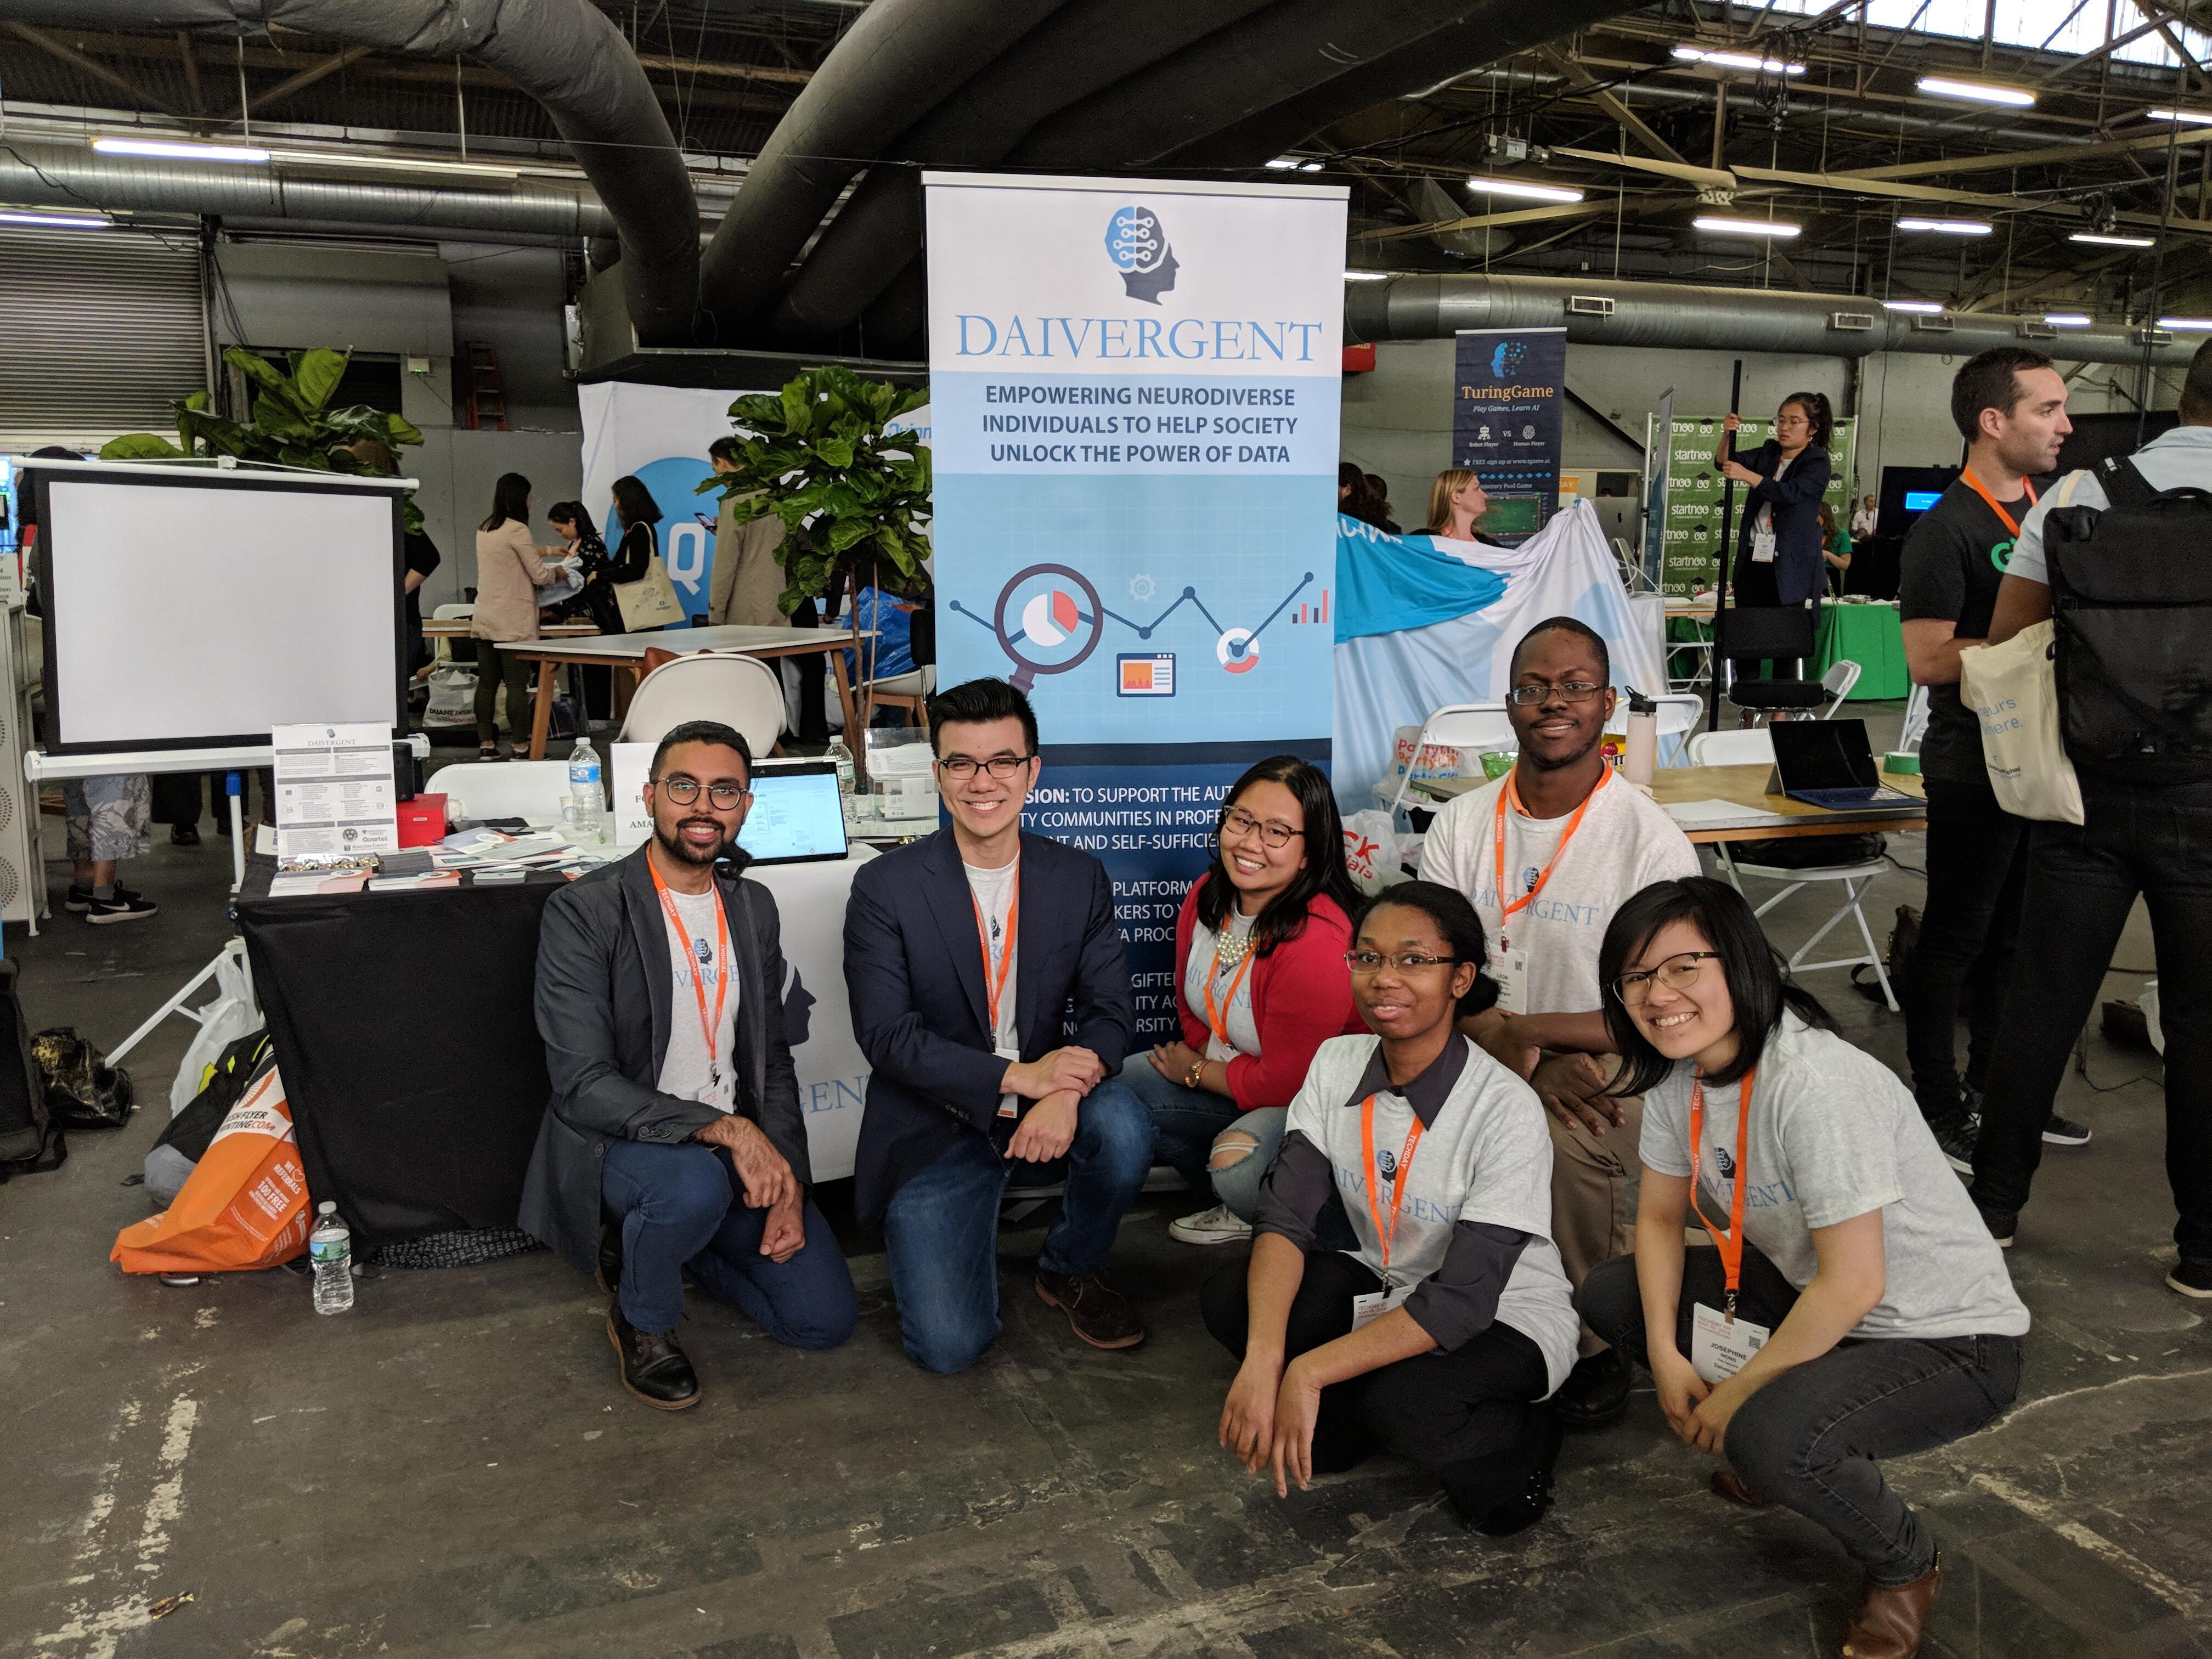 Daivergent co-founders Rahul Mahida and Byran Dai, with others